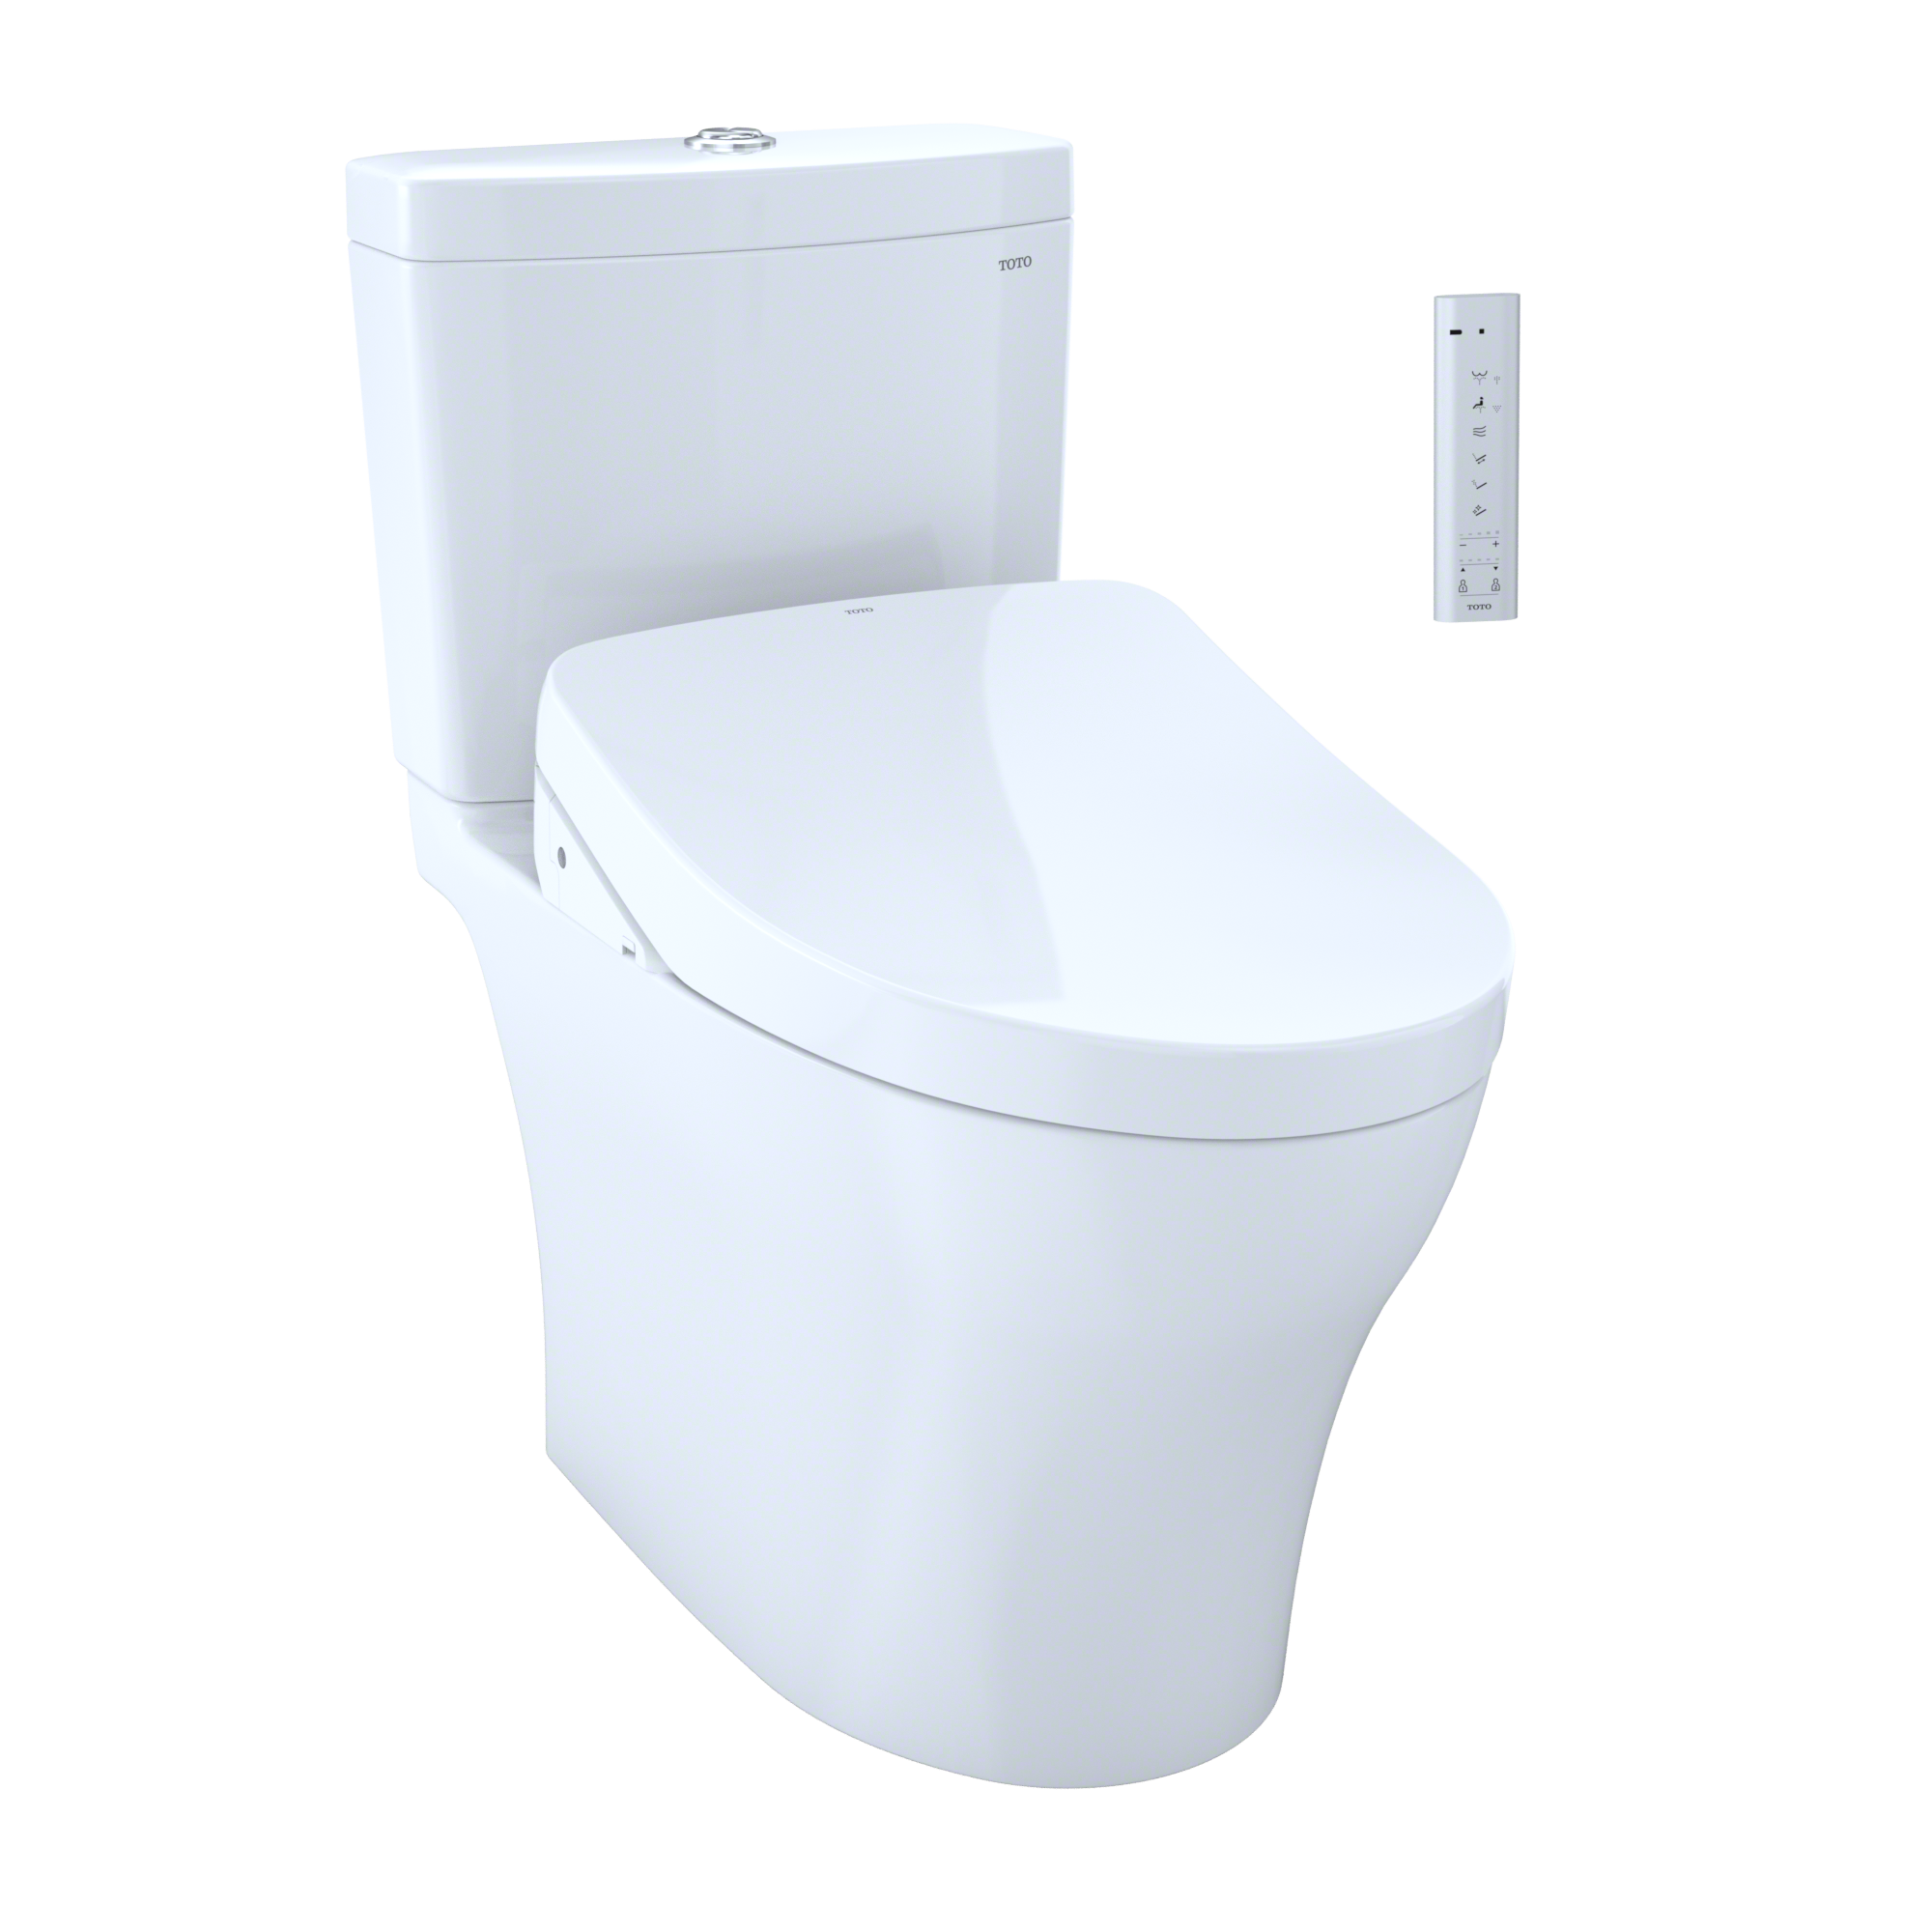 TOTO WASHLET+ Kit Aquia IV 1G Two-Piece Elongated Dual Flush 1.0 and 0.8 GPF Toilet and Contemporary WASHLET S550e Bidet Seat, Cotton White - MW4463056CUMG#01